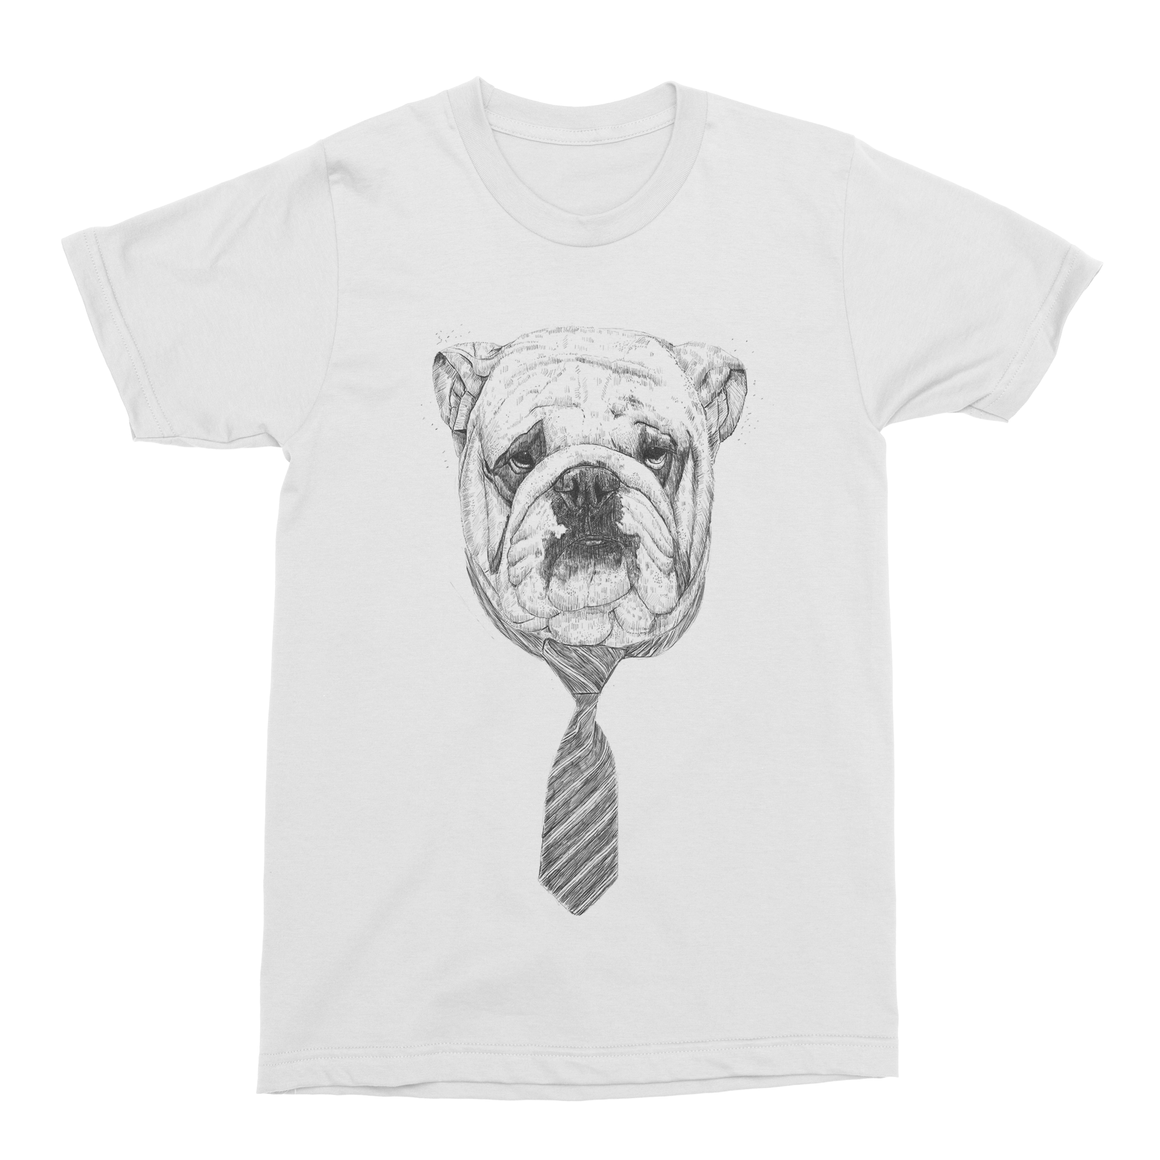 Cool Dog Men's T-Shirt-Curartee